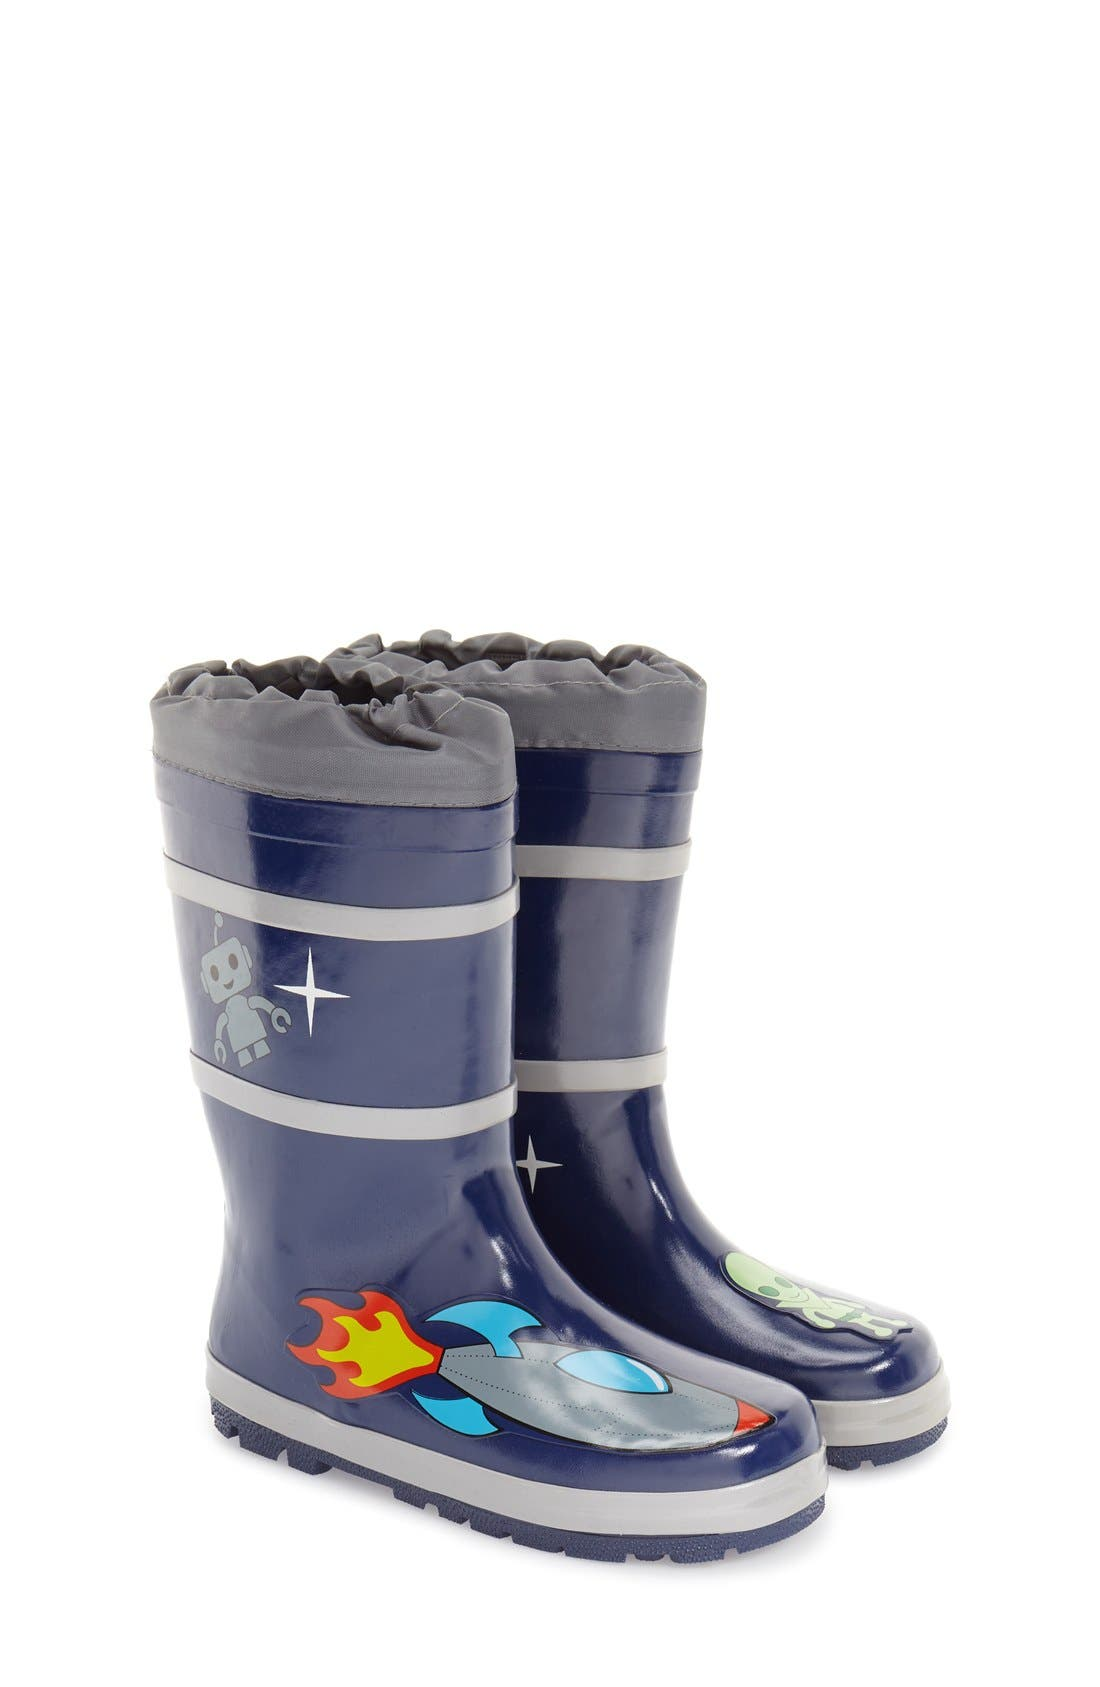 KIDORABLE 'Space Hero' Waterproof Rain Boot